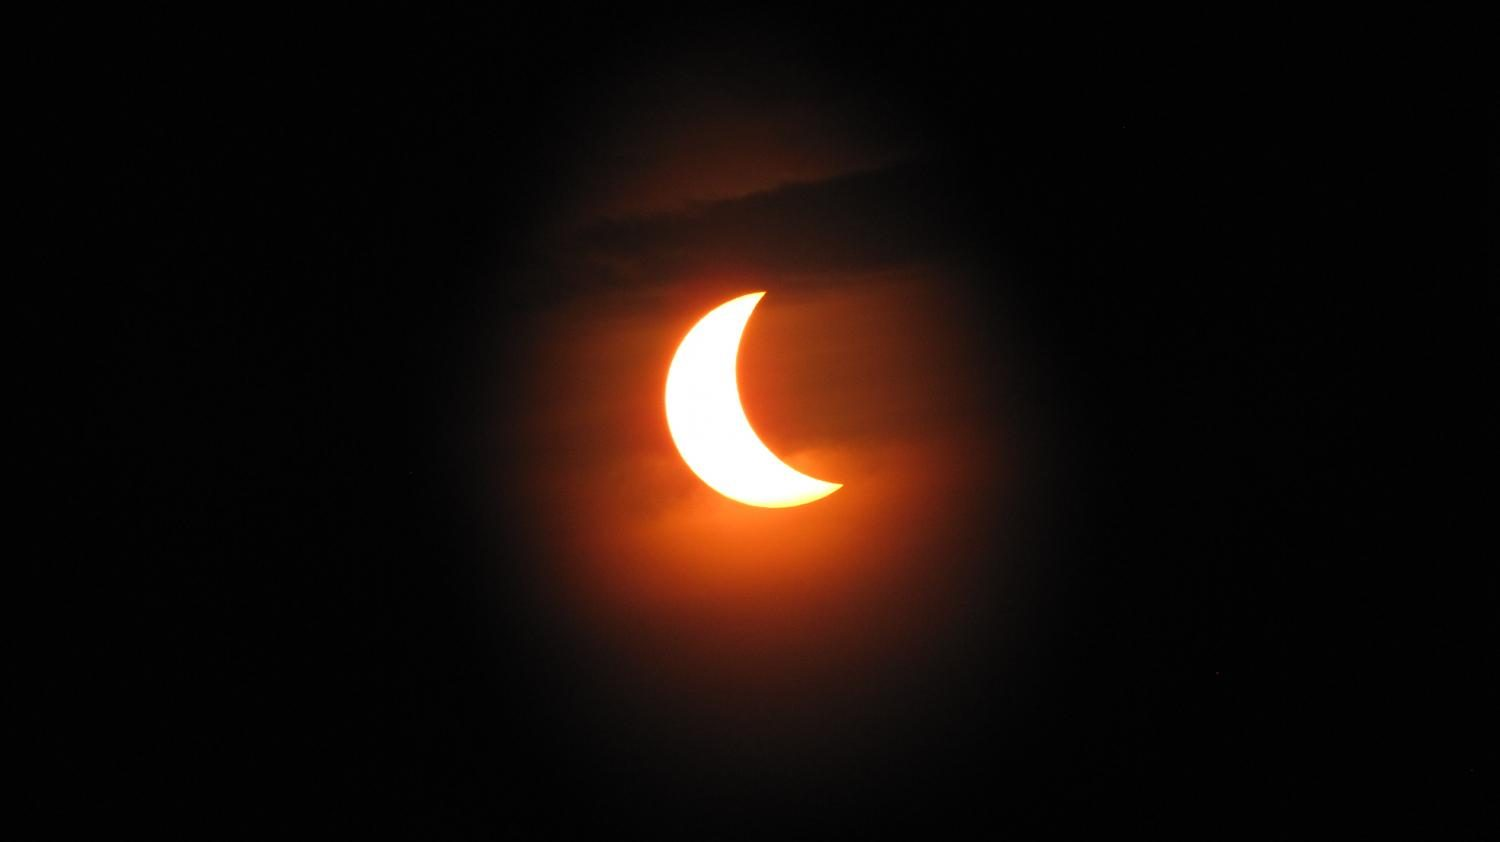 Partial solar eclipse, as viewed from India in July 2009.